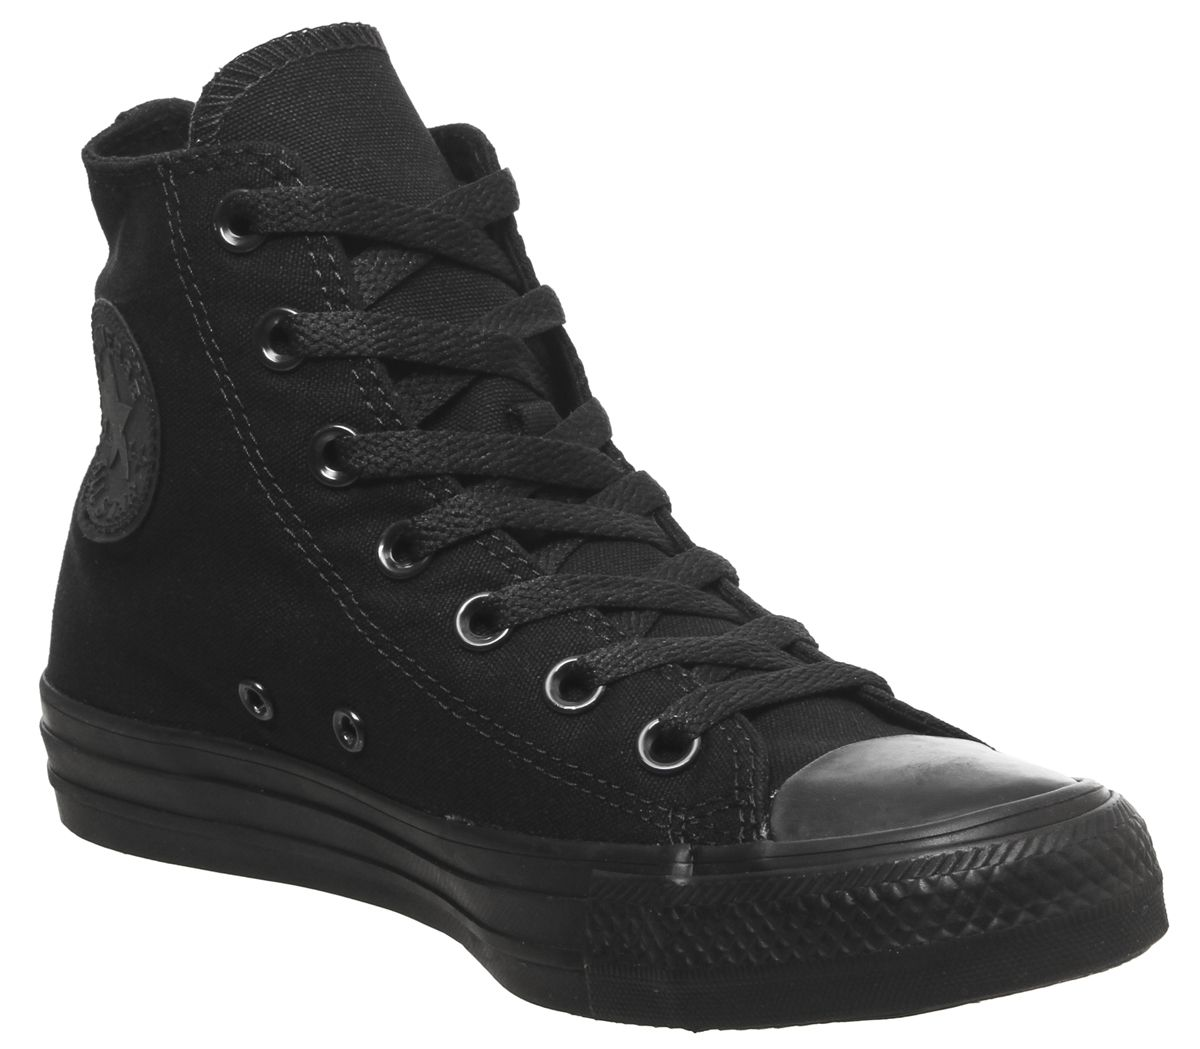 ad7dca1abfd4 Converse All Star Hi Black Mono Canvas - Unisex Sports